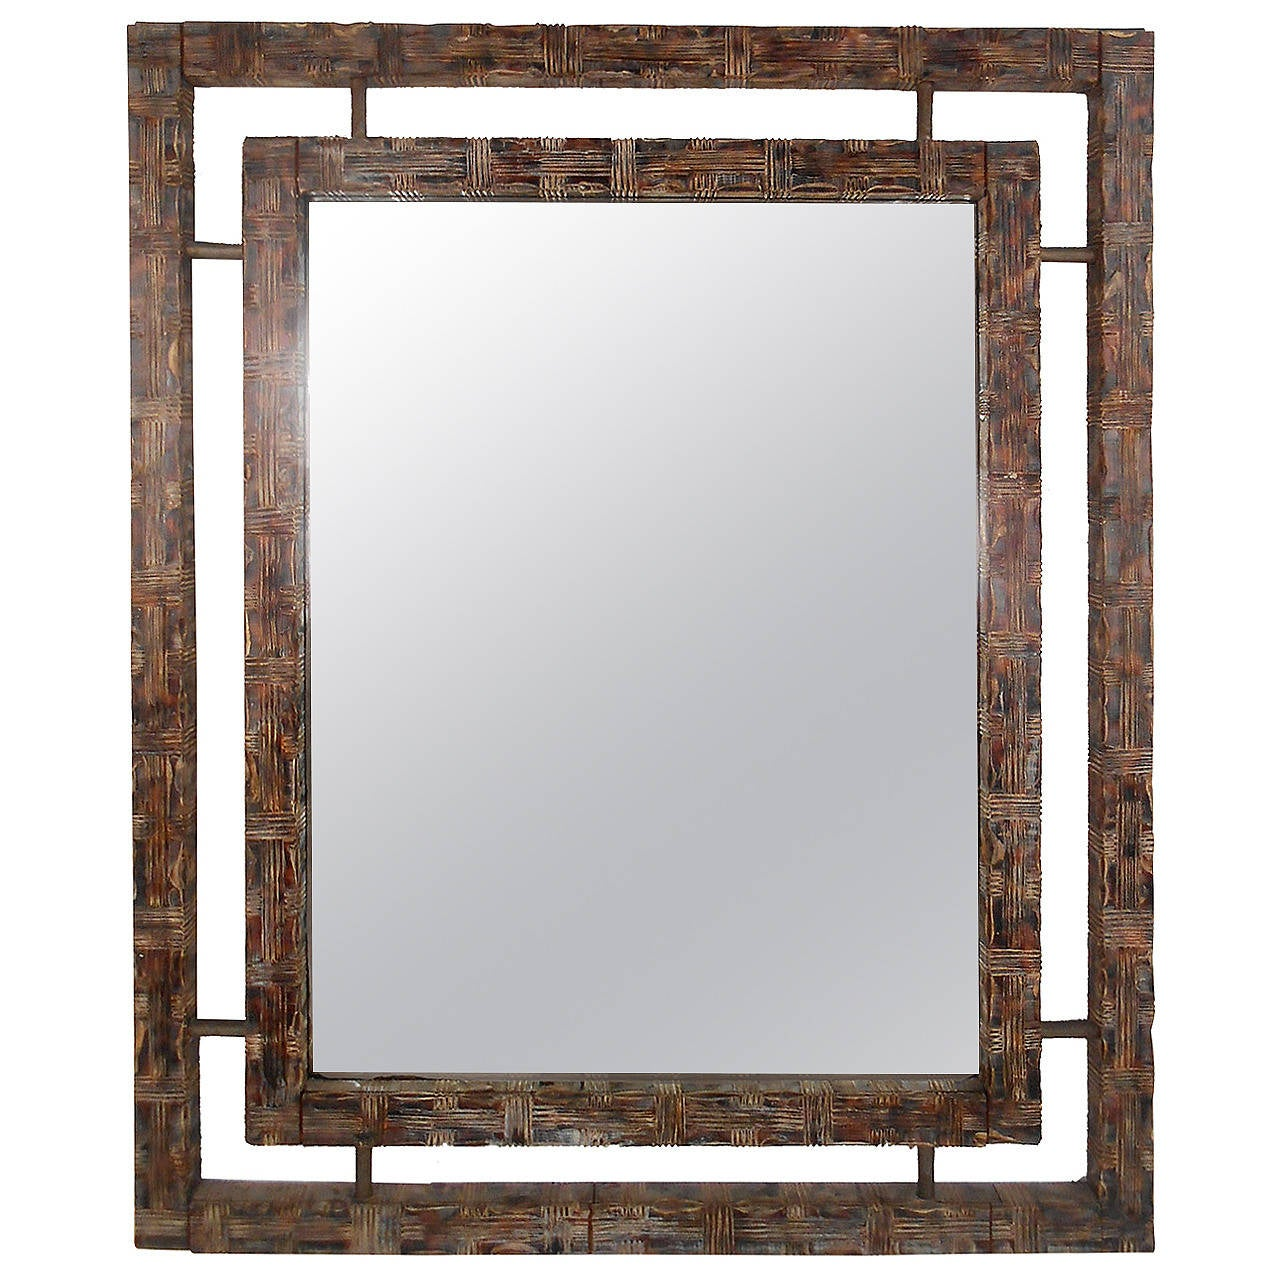 Unique Wall Mirror w/ Textured Frame at 1stdibs